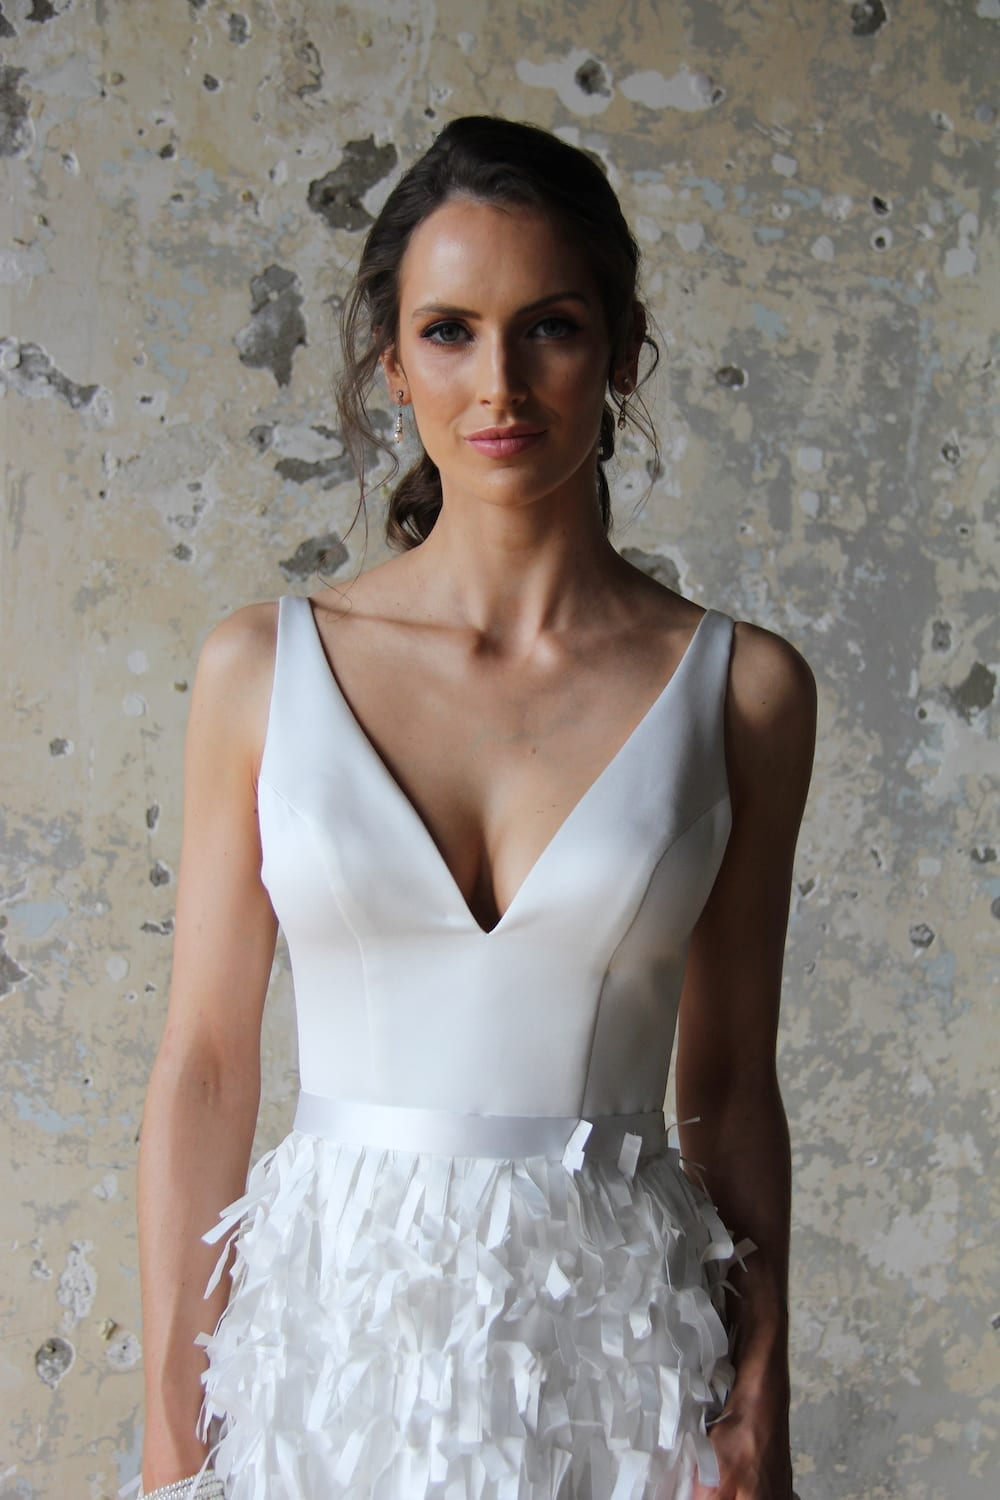 Female model wearing Vinka Design Modern Muse Wedding Dress. In chic warehouse the front detail of a gown with a deep v-neckline and a squared low back with a cut ribboned satin skirt.